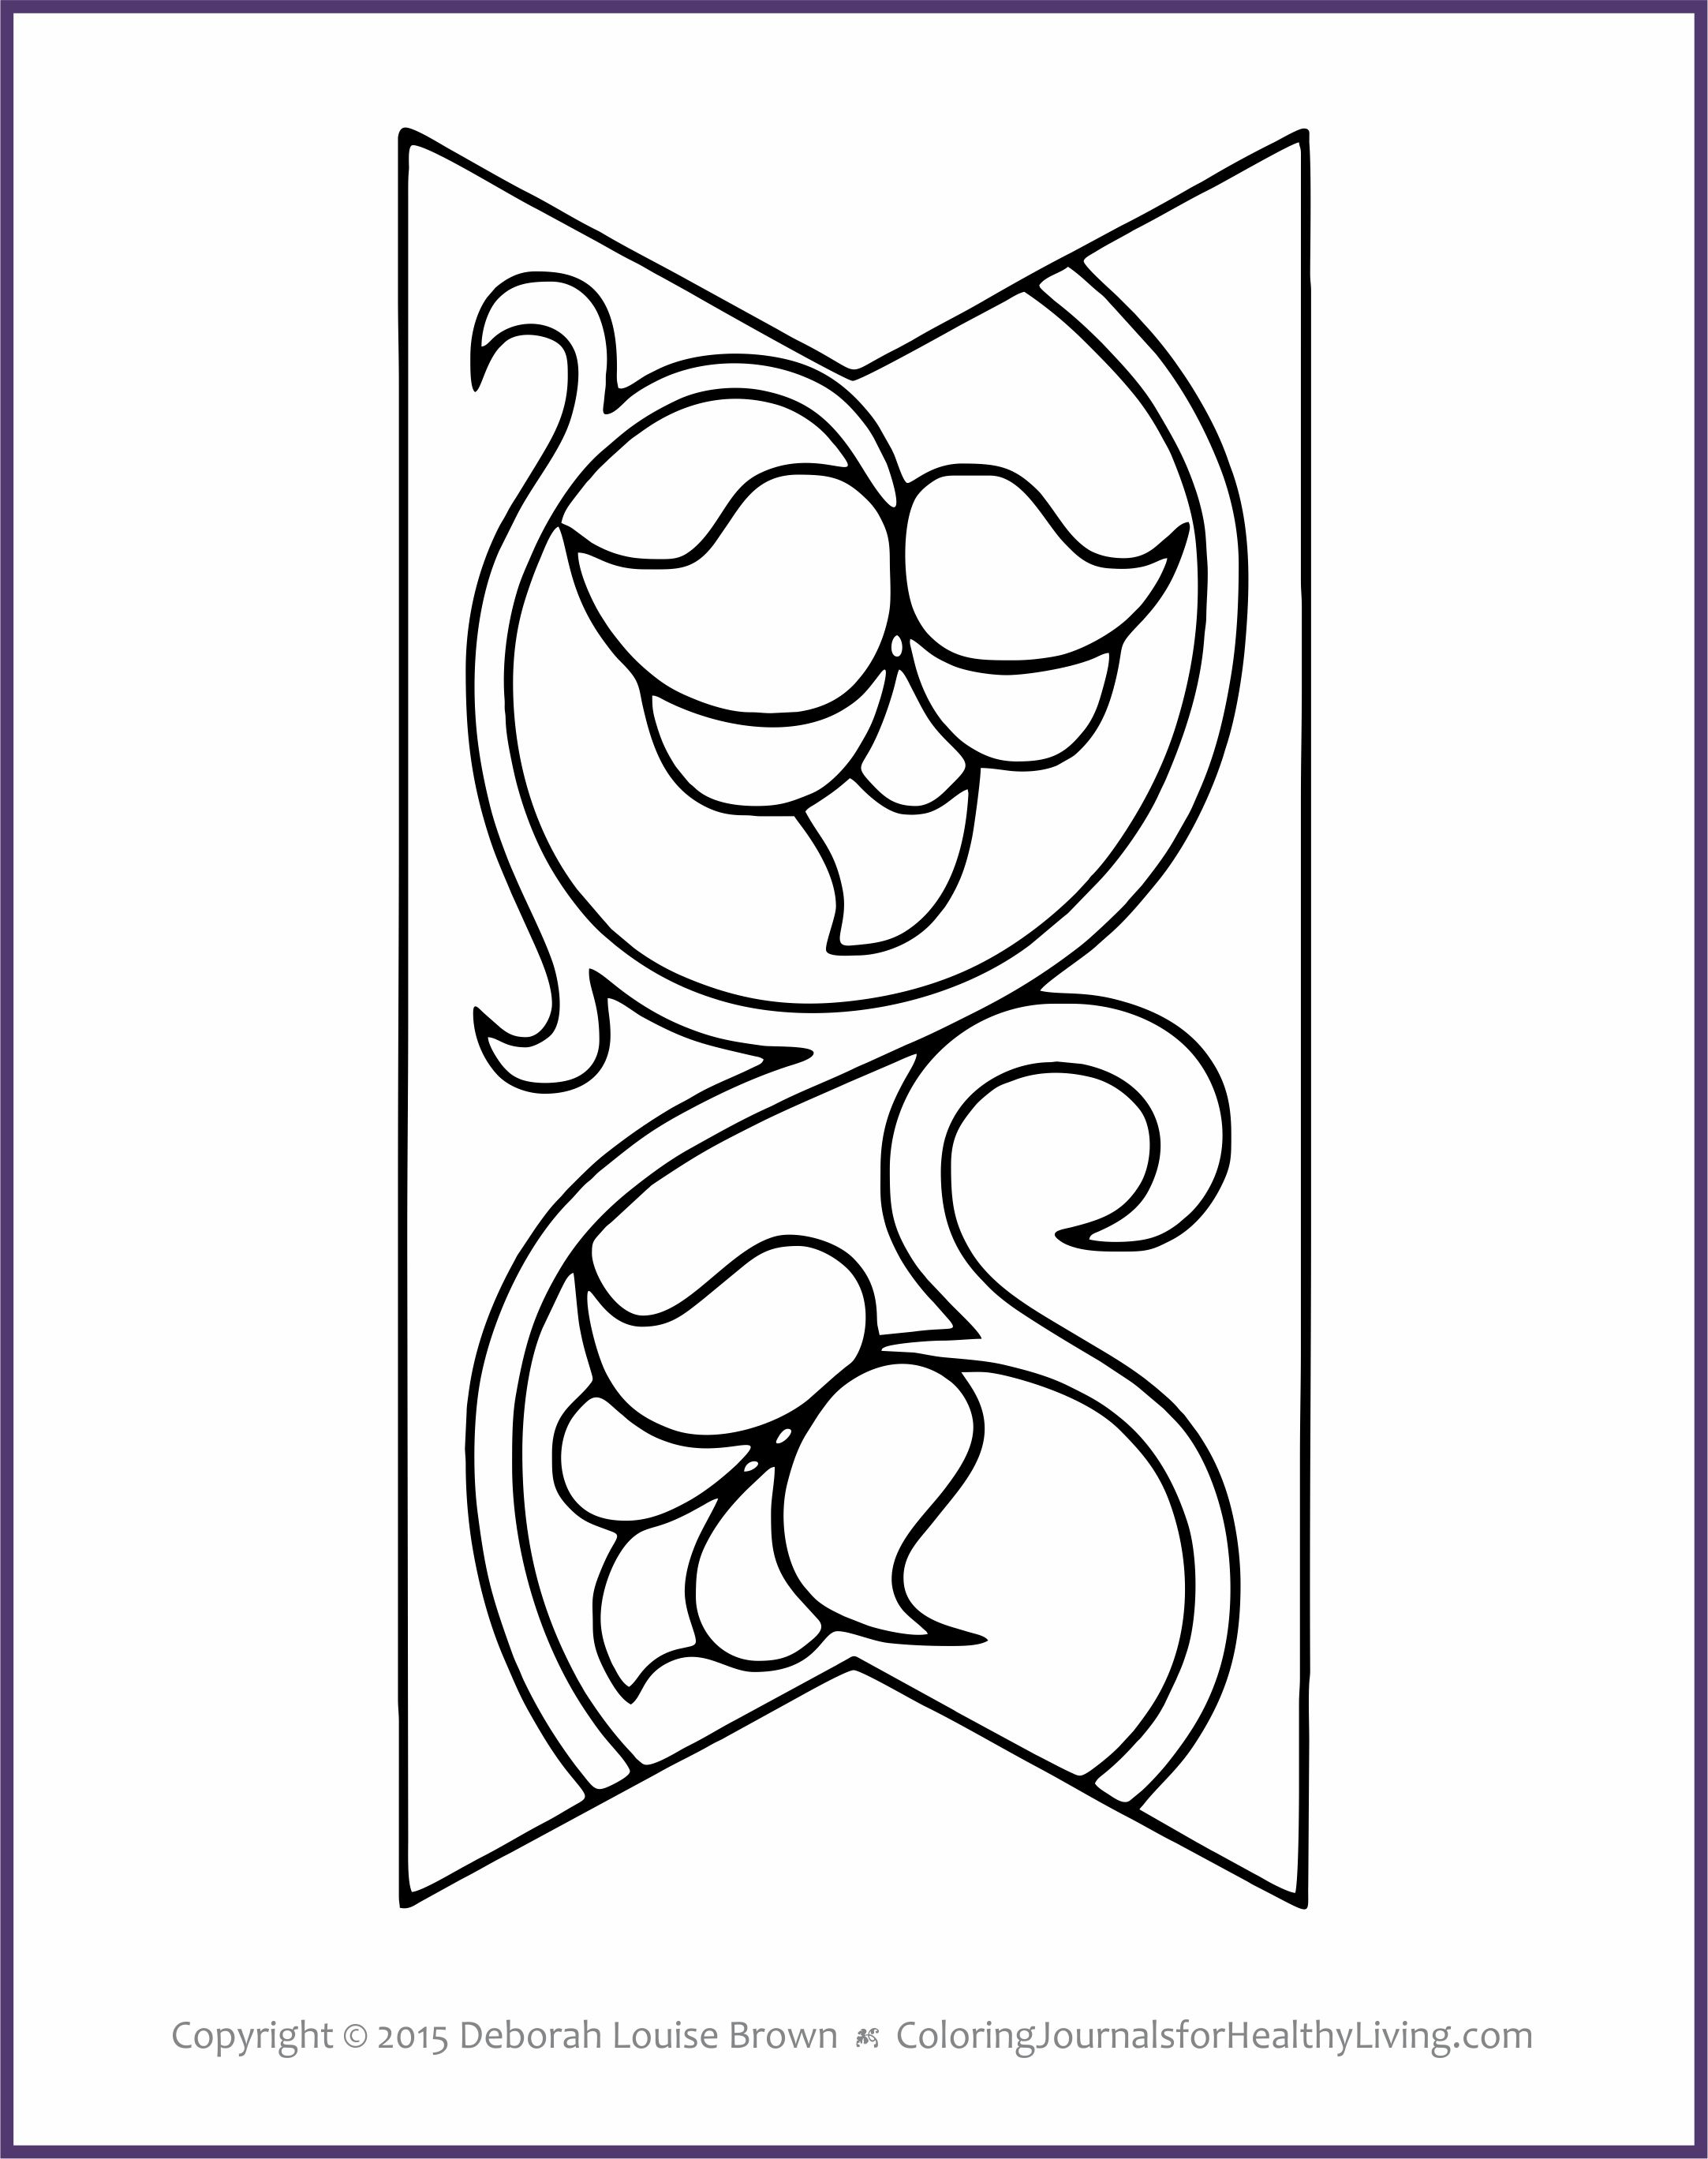 live healthy coloring pages - photo#37